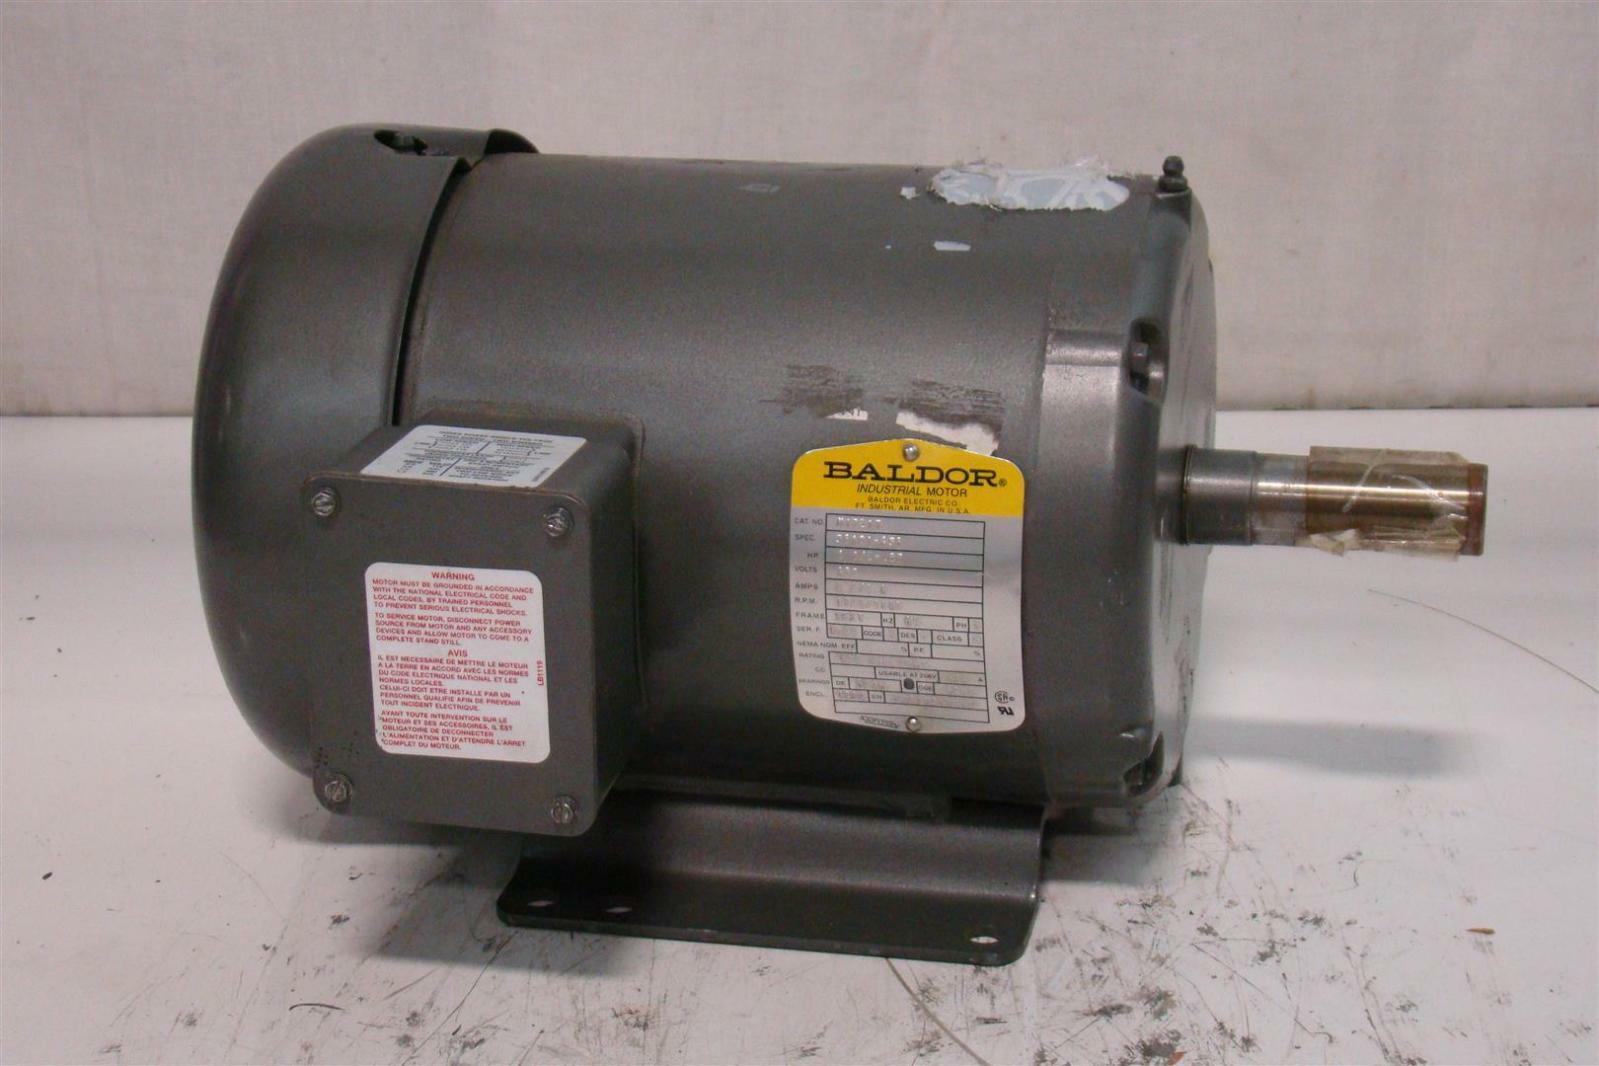 Baldor industrial motor 1 1 2hp 460v 1725 1140rpm m1721t for Baldor industrial motor parts